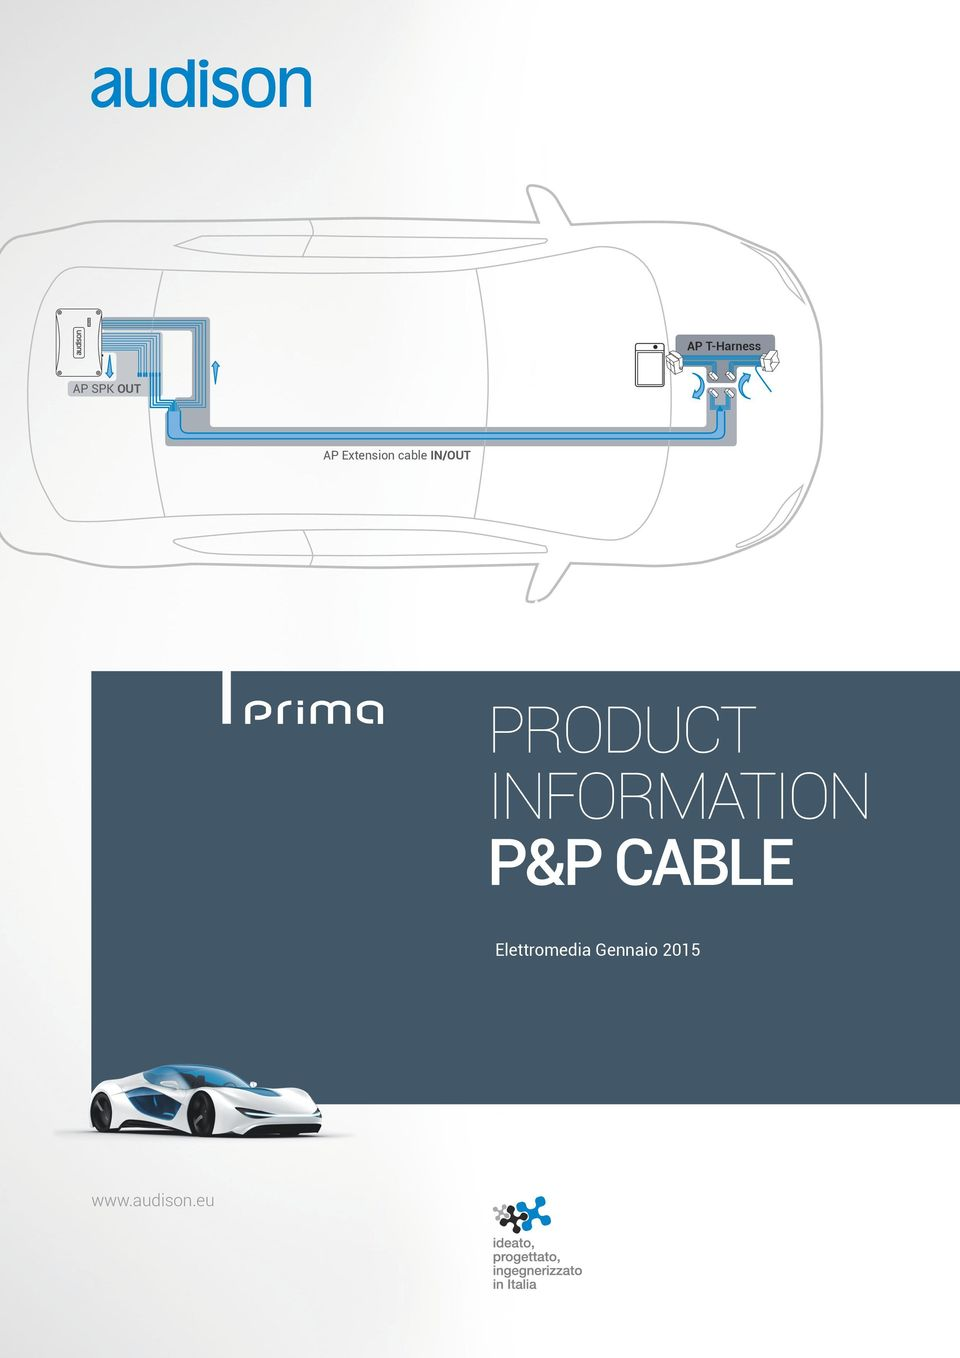 PRODUCT INFORMATION P&P CABLE